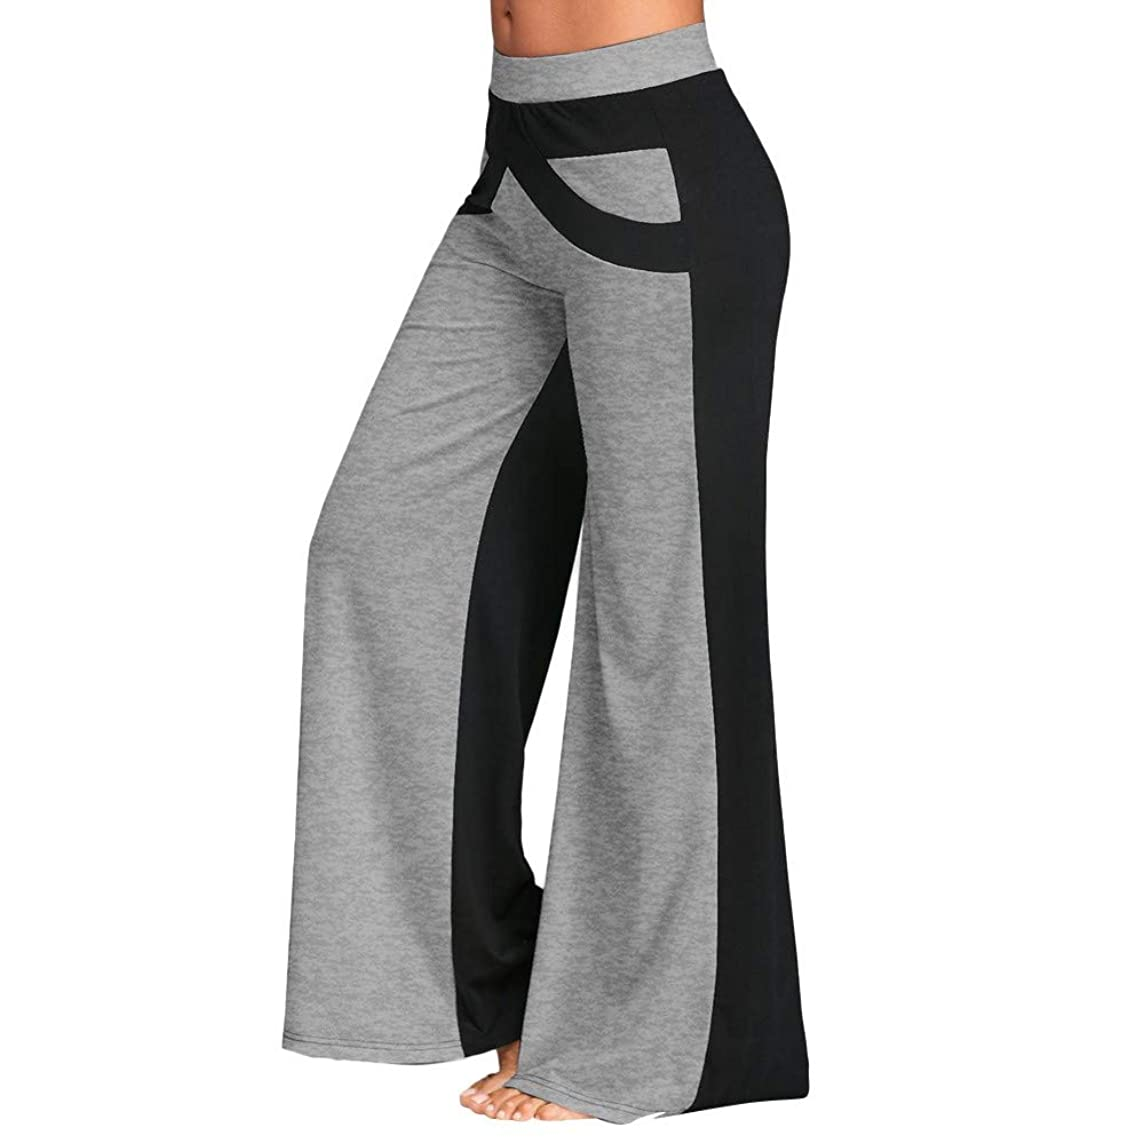 SGMORE ? Boot-Cut Yoga Pants Tummy Control Patchwork Bell Bottoms Flare Trousers Mid Waisted Wide Leg Yoga Pants